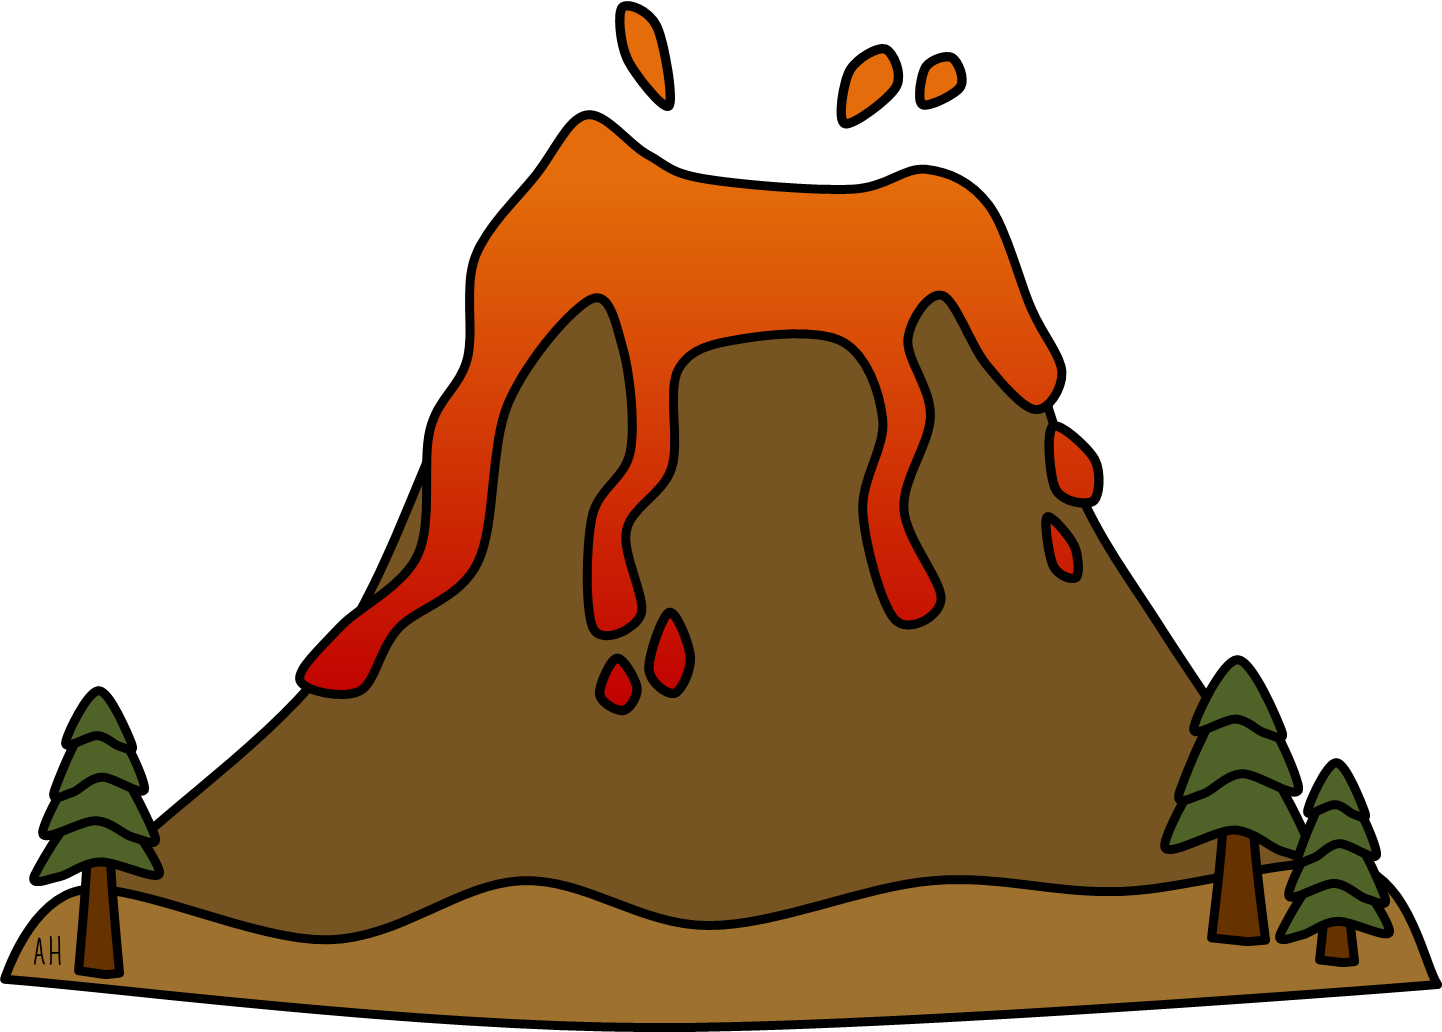 how to make a small volcano